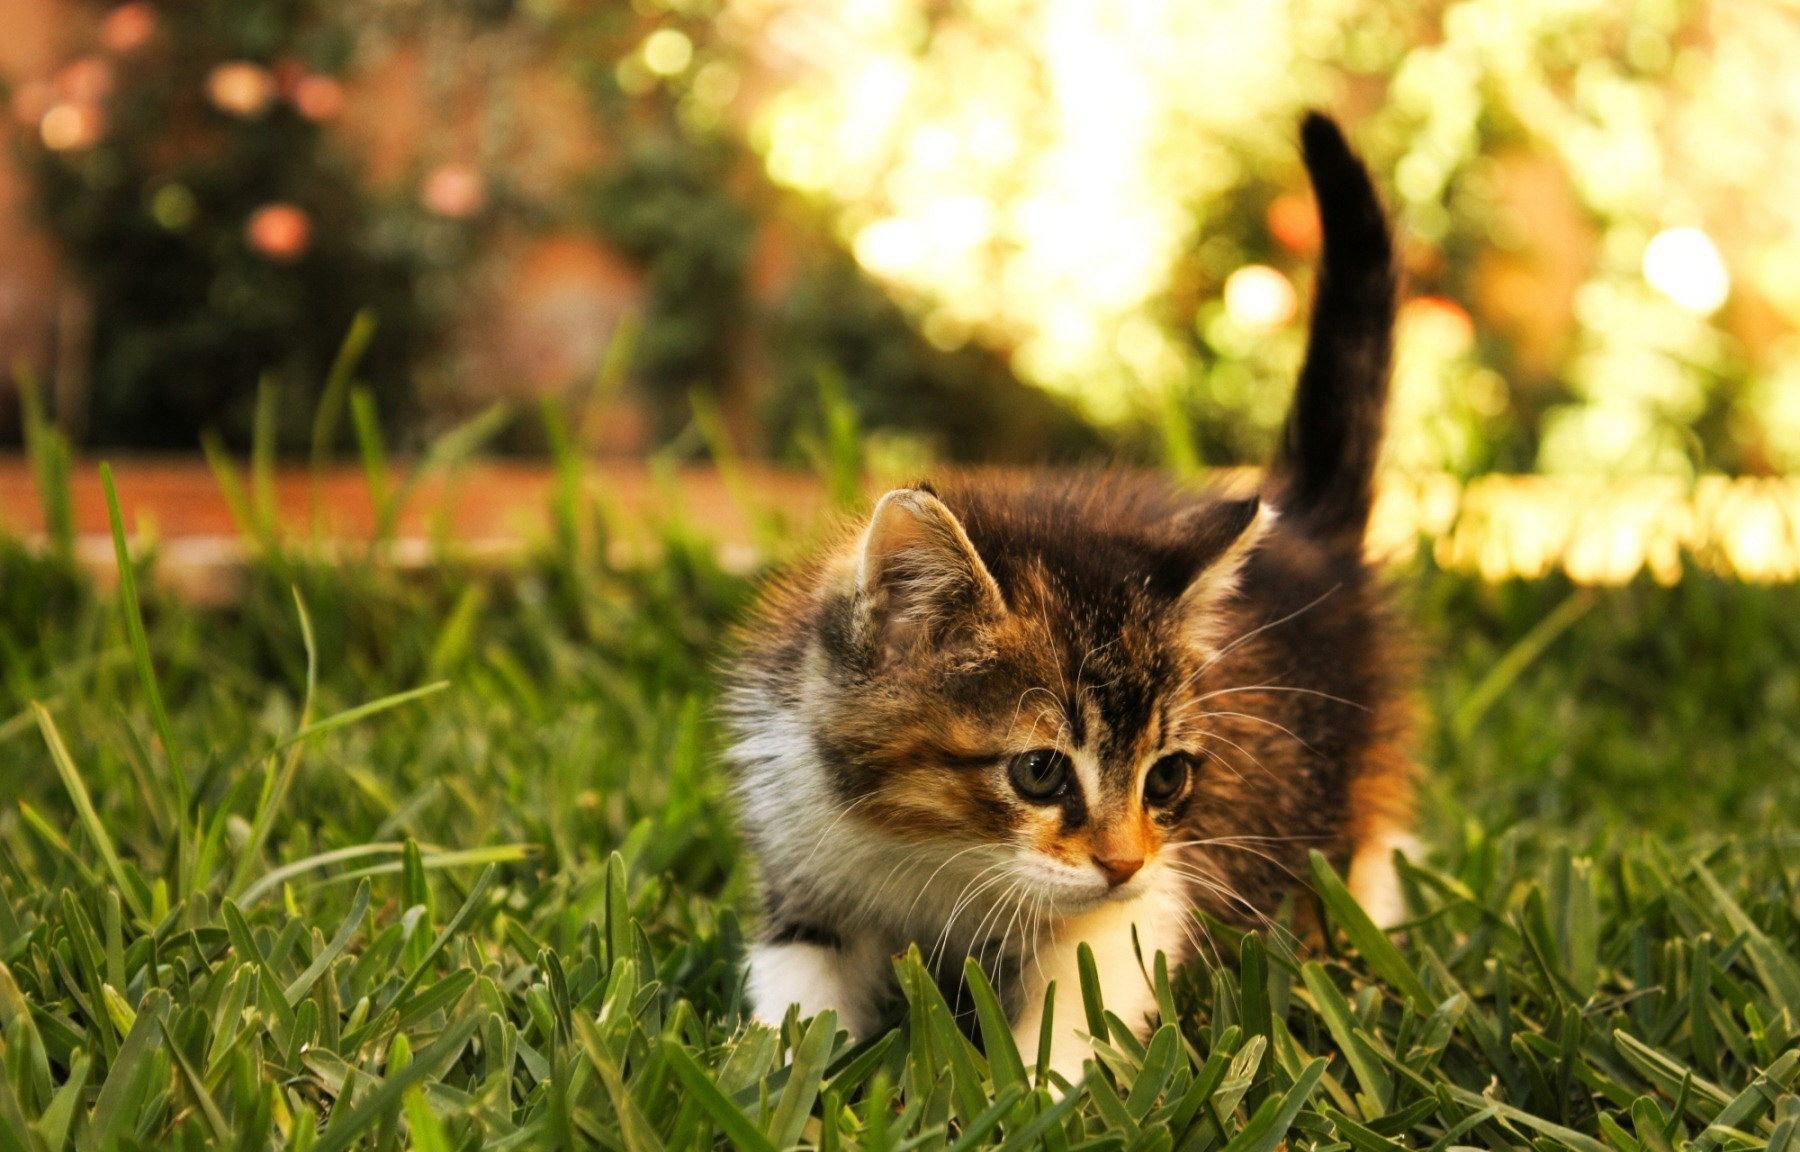 20 Super Adorable Cat Pictures That Will Make You Happy 2073459941